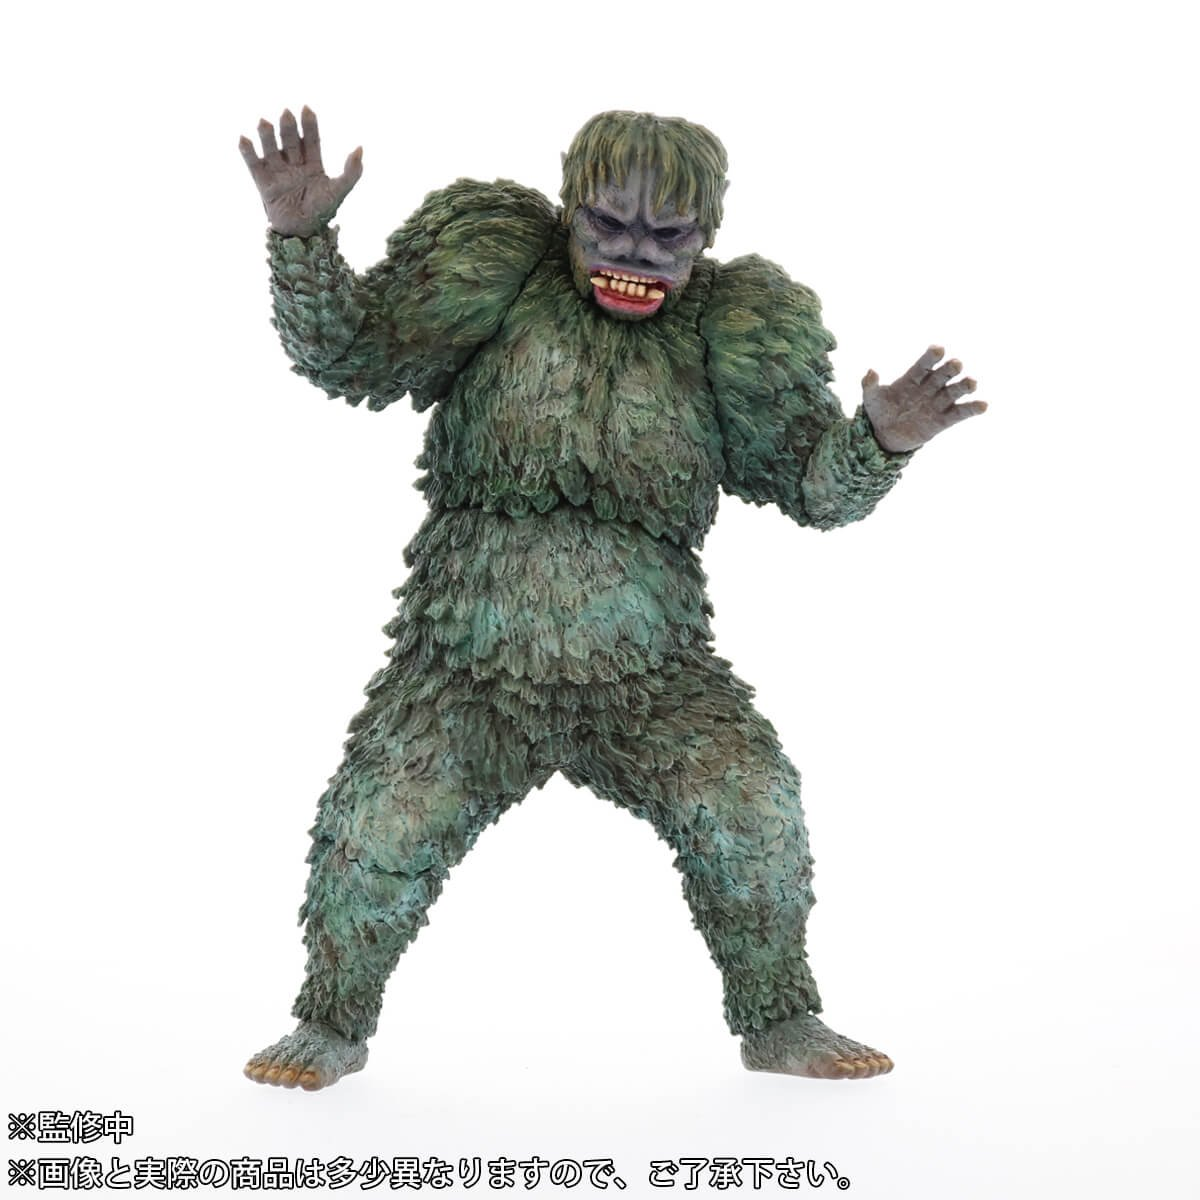 Toho Large Monster Series Sanda vs. Guyra Shonen Rick Limited Edition 11